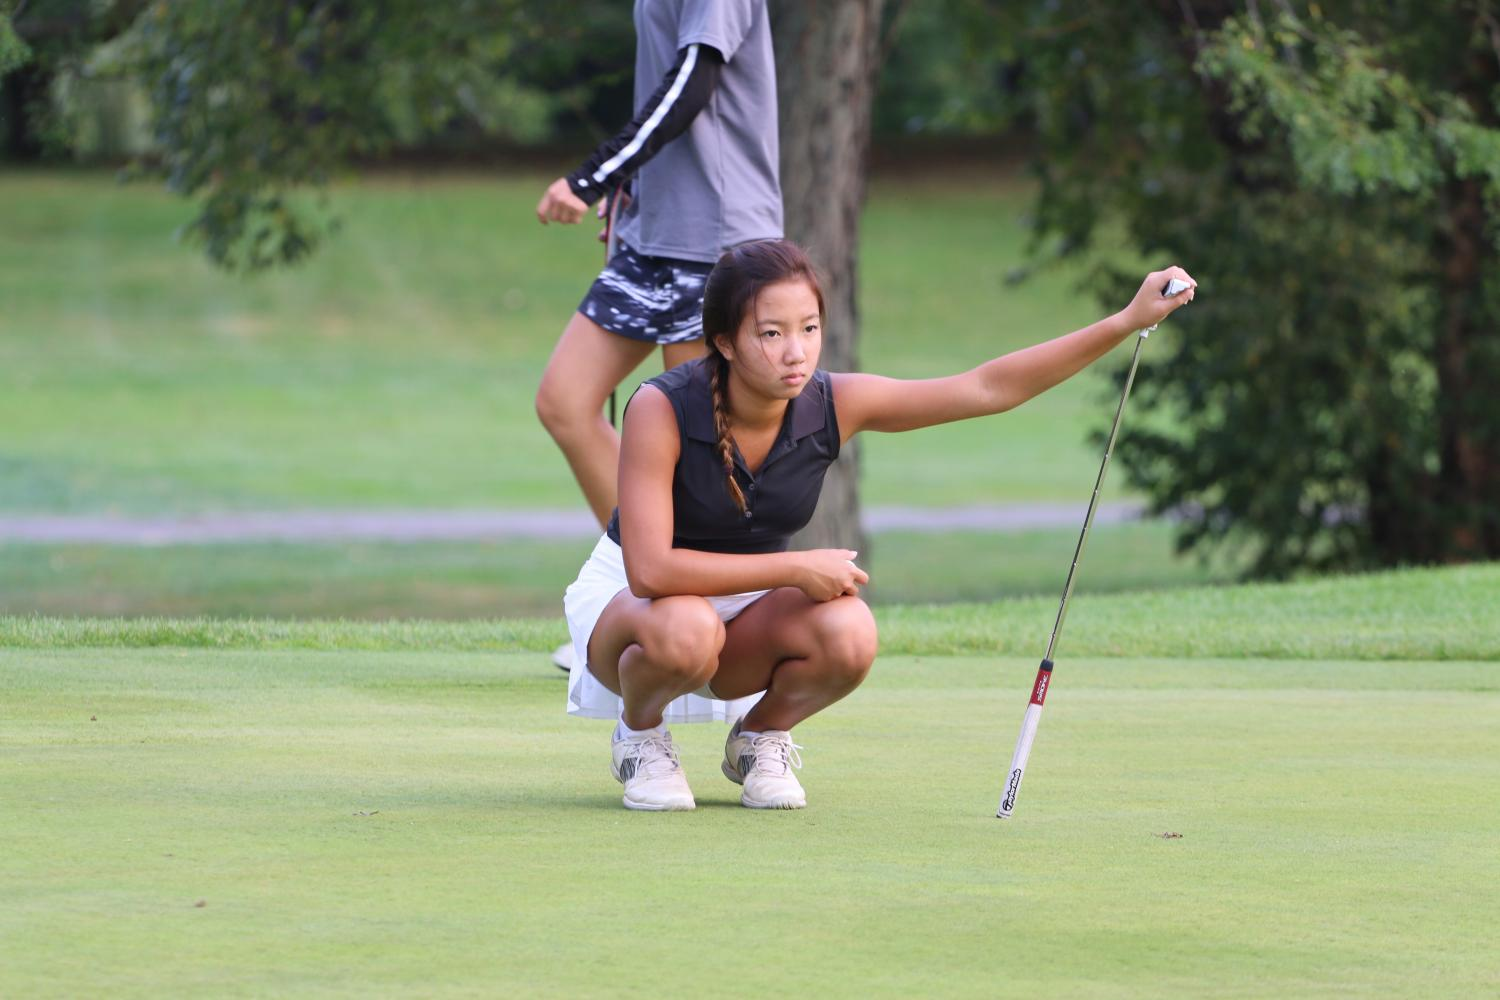 Varsity Girls Golf loses their 5th match against New Trier with a score of 224-154.